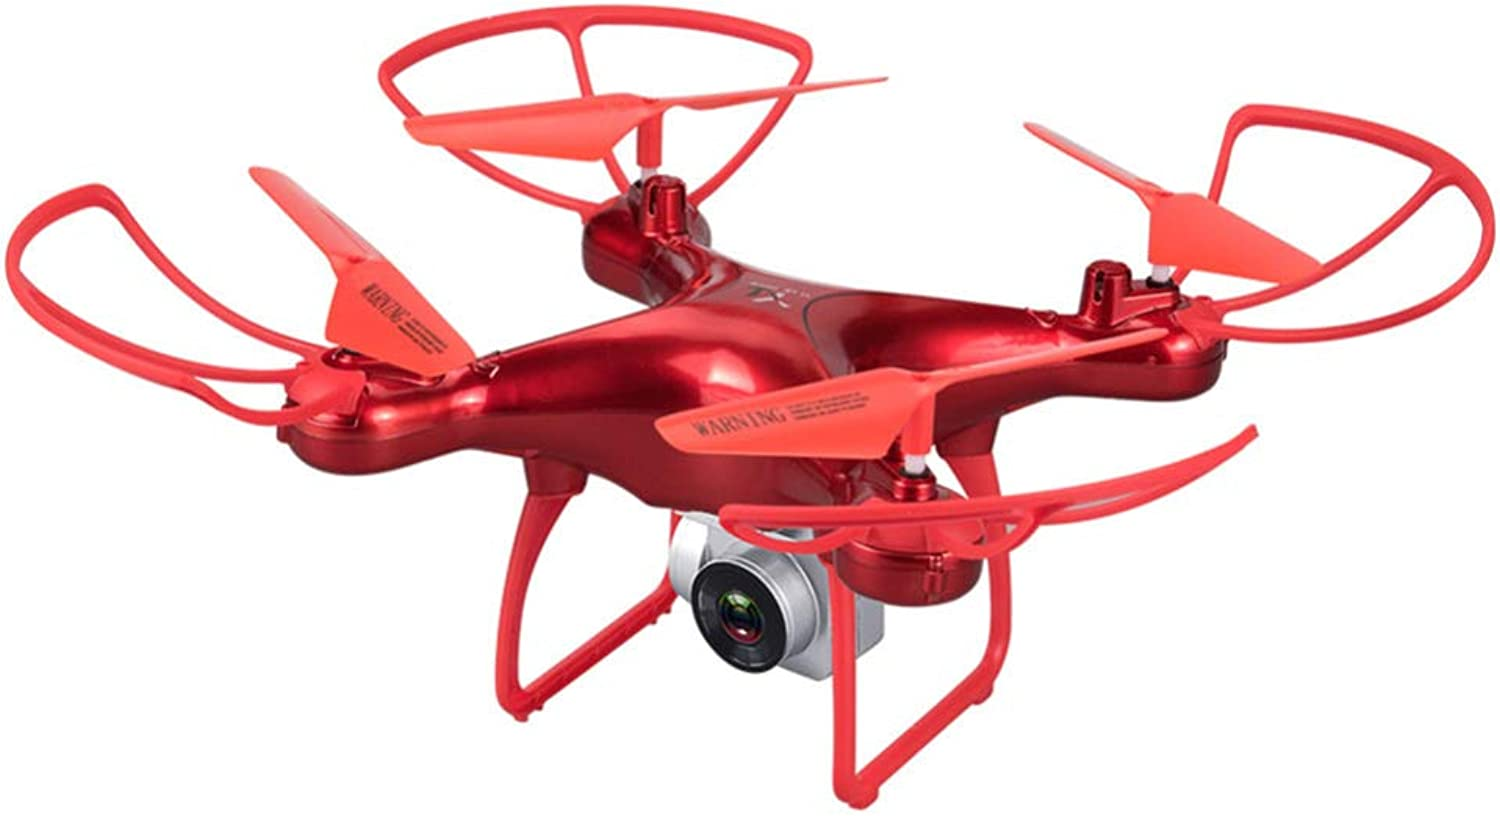 ASQXYFCT Ultra Long Battery Uav 20 Minutes Aerial Pressure Fixed Height Remote Control Aircraft FourAxis Aircraft Toy,Red,WRJ